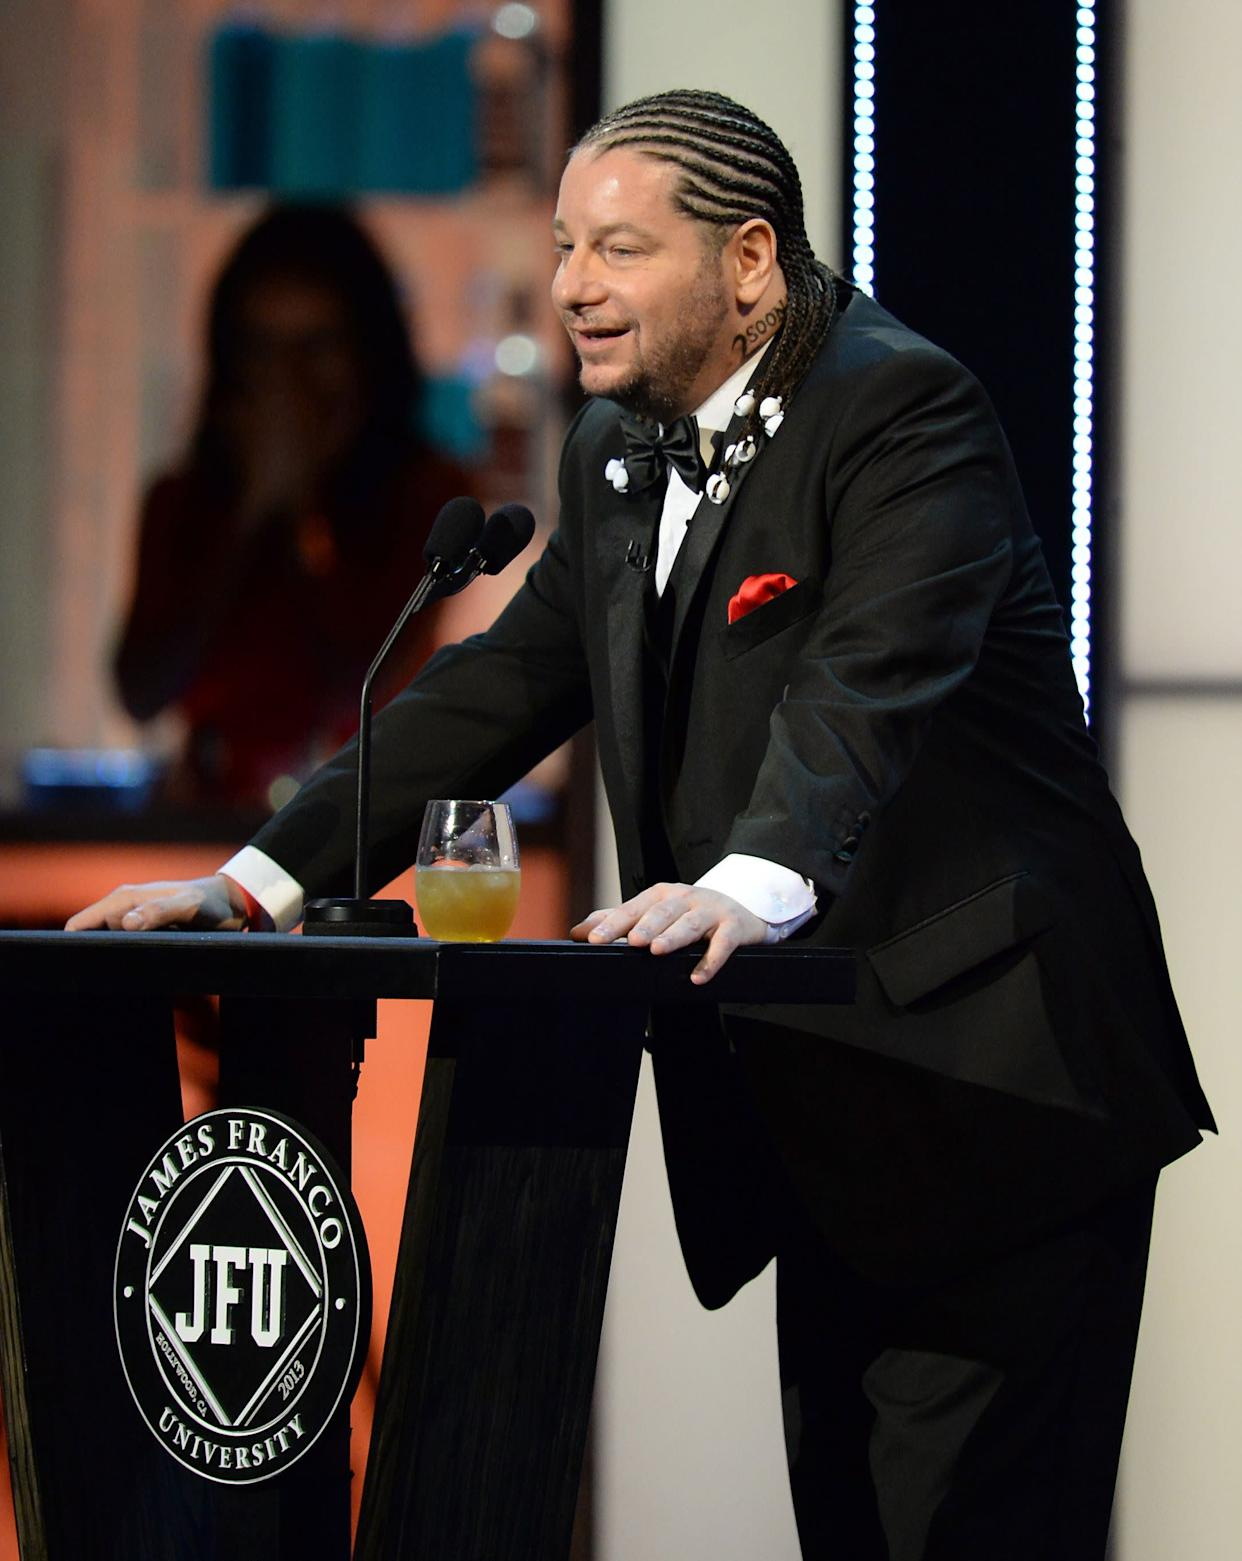 CULVER CITY, CA - AUGUST 25: Comedian Jeffrey Ross speaks onstage during The Comedy Central Roast of James Franco at Culver Studios on August 25, 2013 in Culver City, California. The Comedy Central Roast Of James Franco will air on September 2 at 10:00 p.m. ET/PT. (Photo by Jason Merritt/Getty Images for Comedy Central)